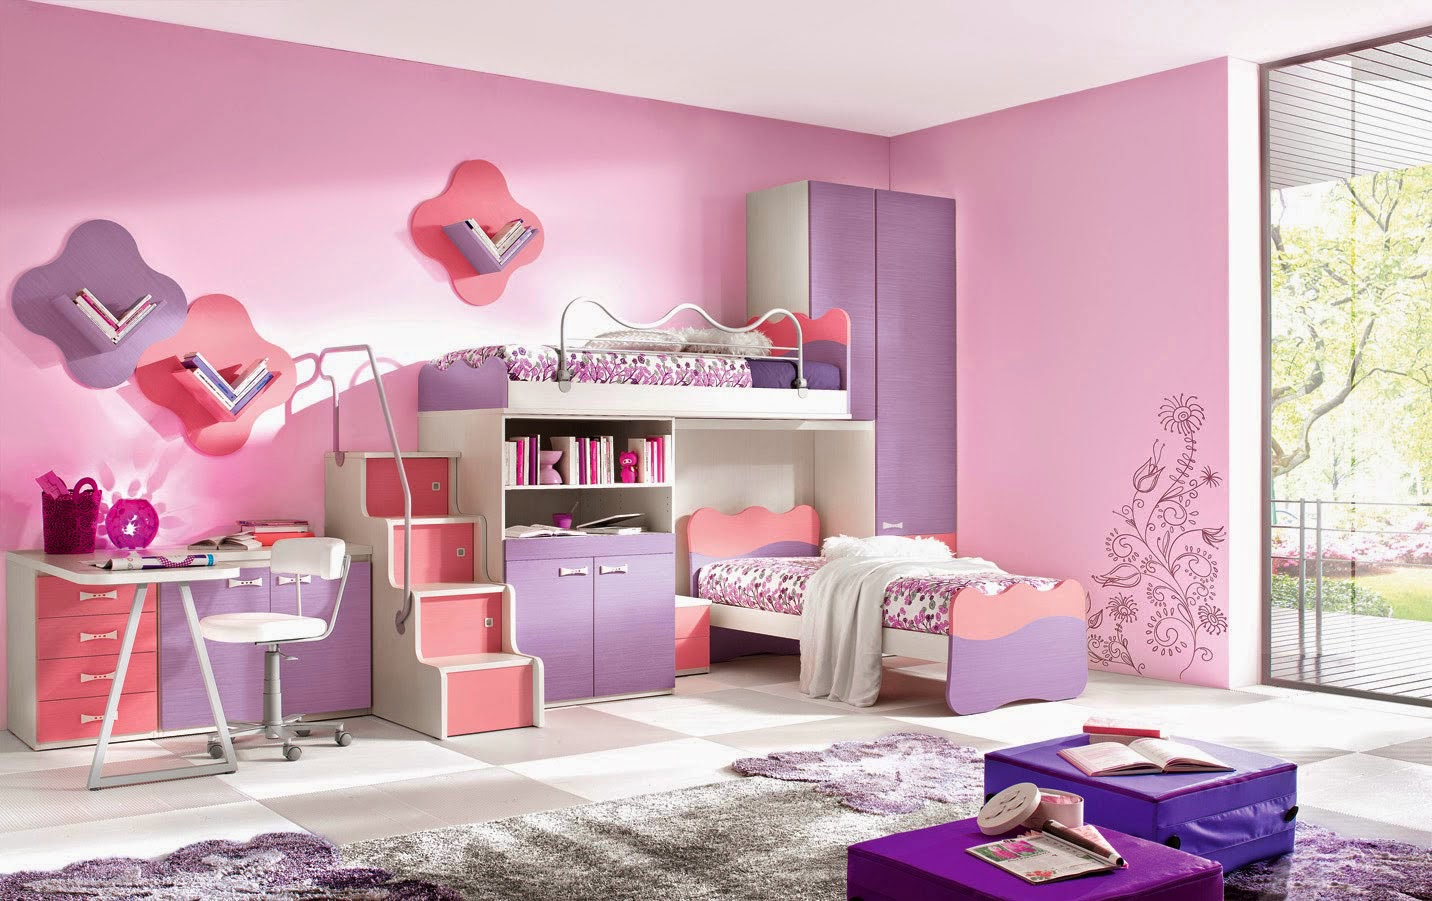 Rooms-Children-Bedroom-Minimalist